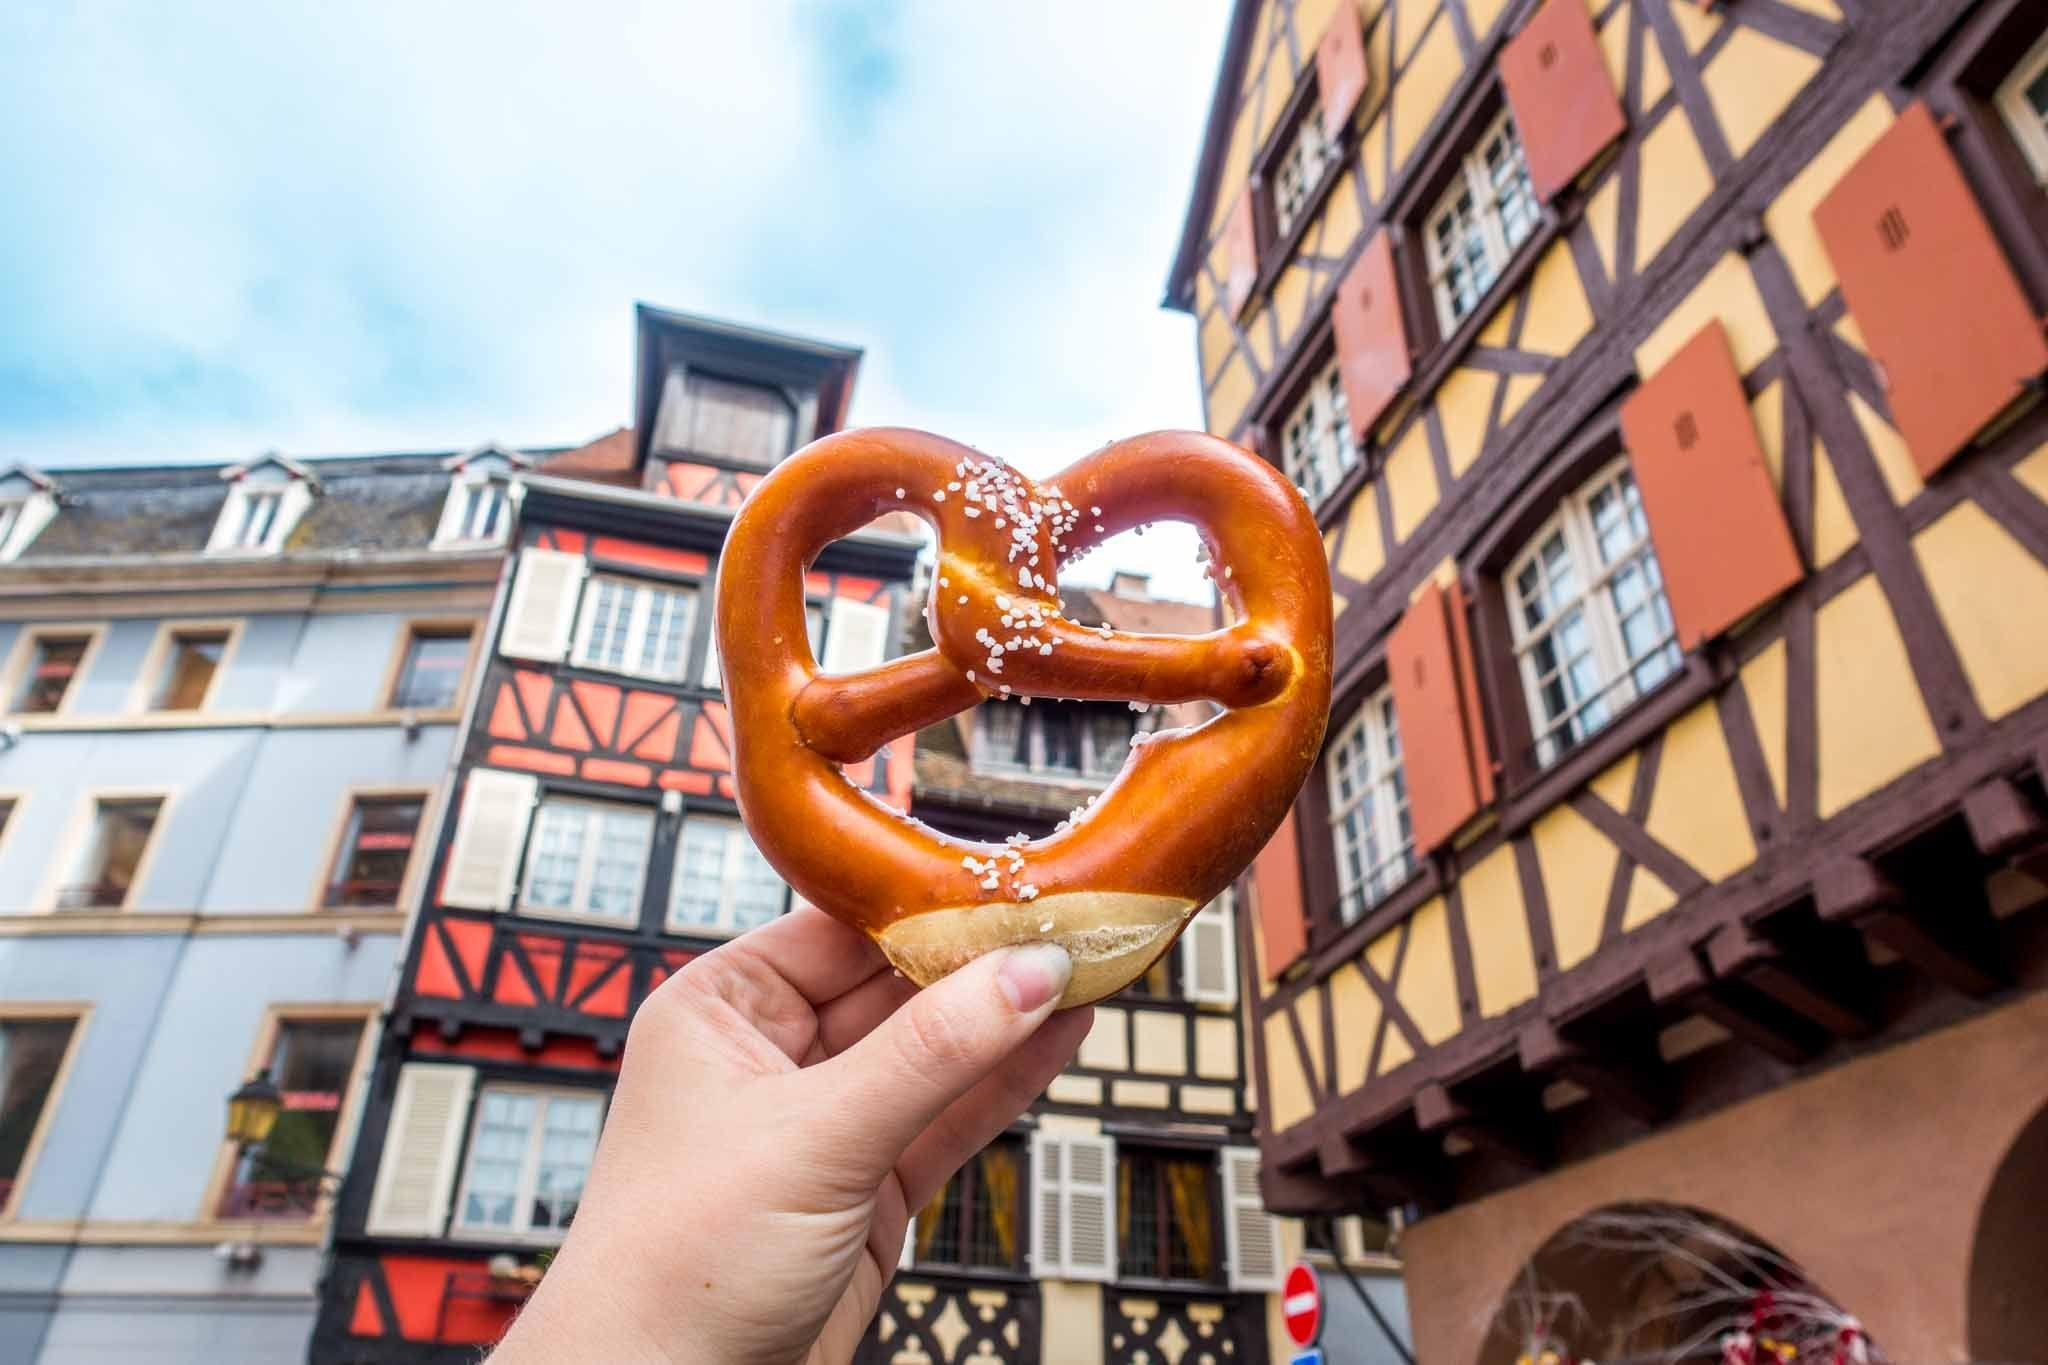 Pretzel in front of traditional Alsace buildings